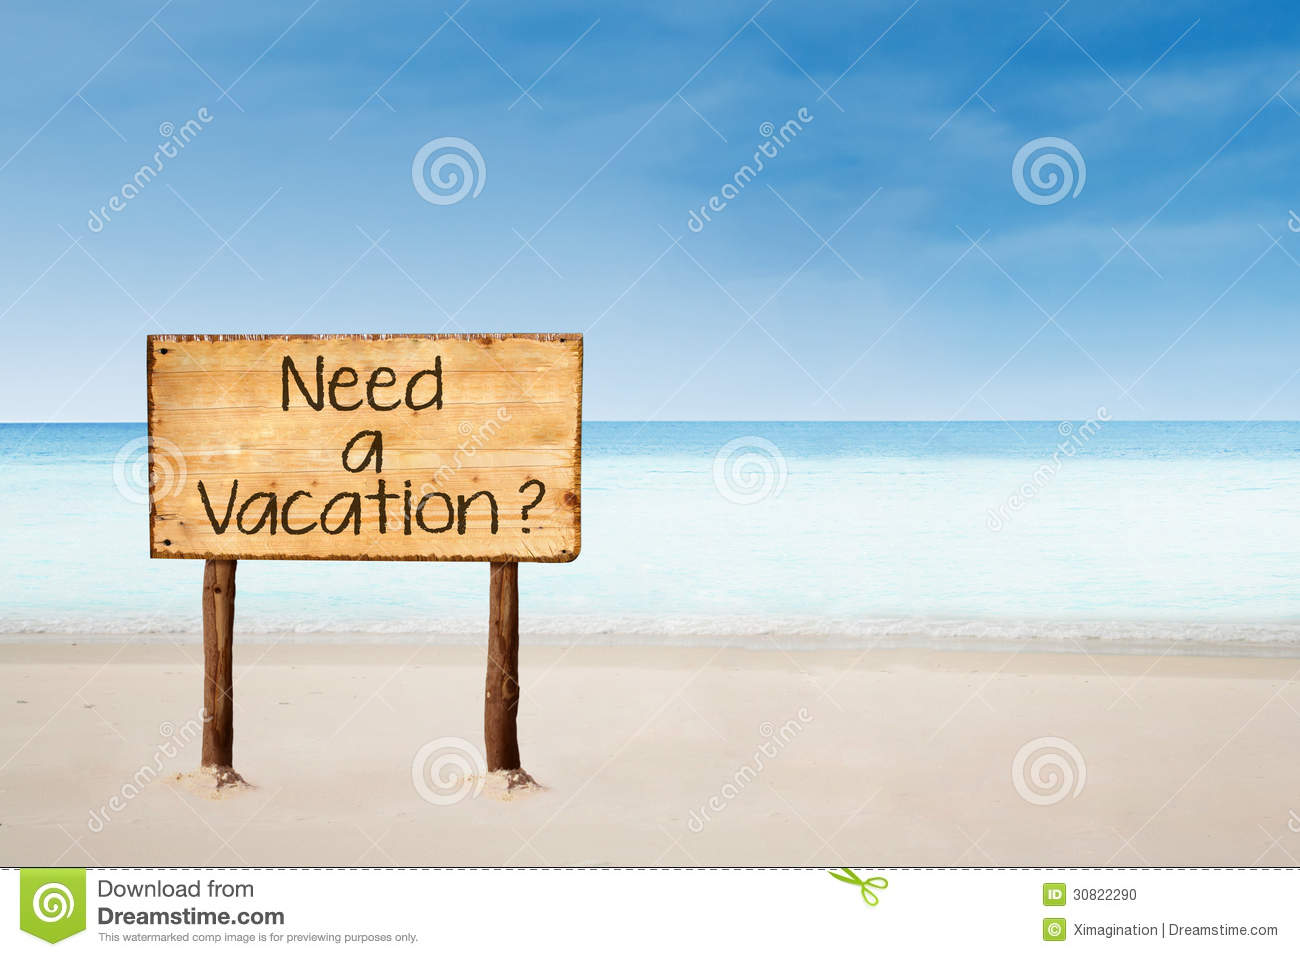 Need A Vacation Sign On Beach Stock Photo  Image of